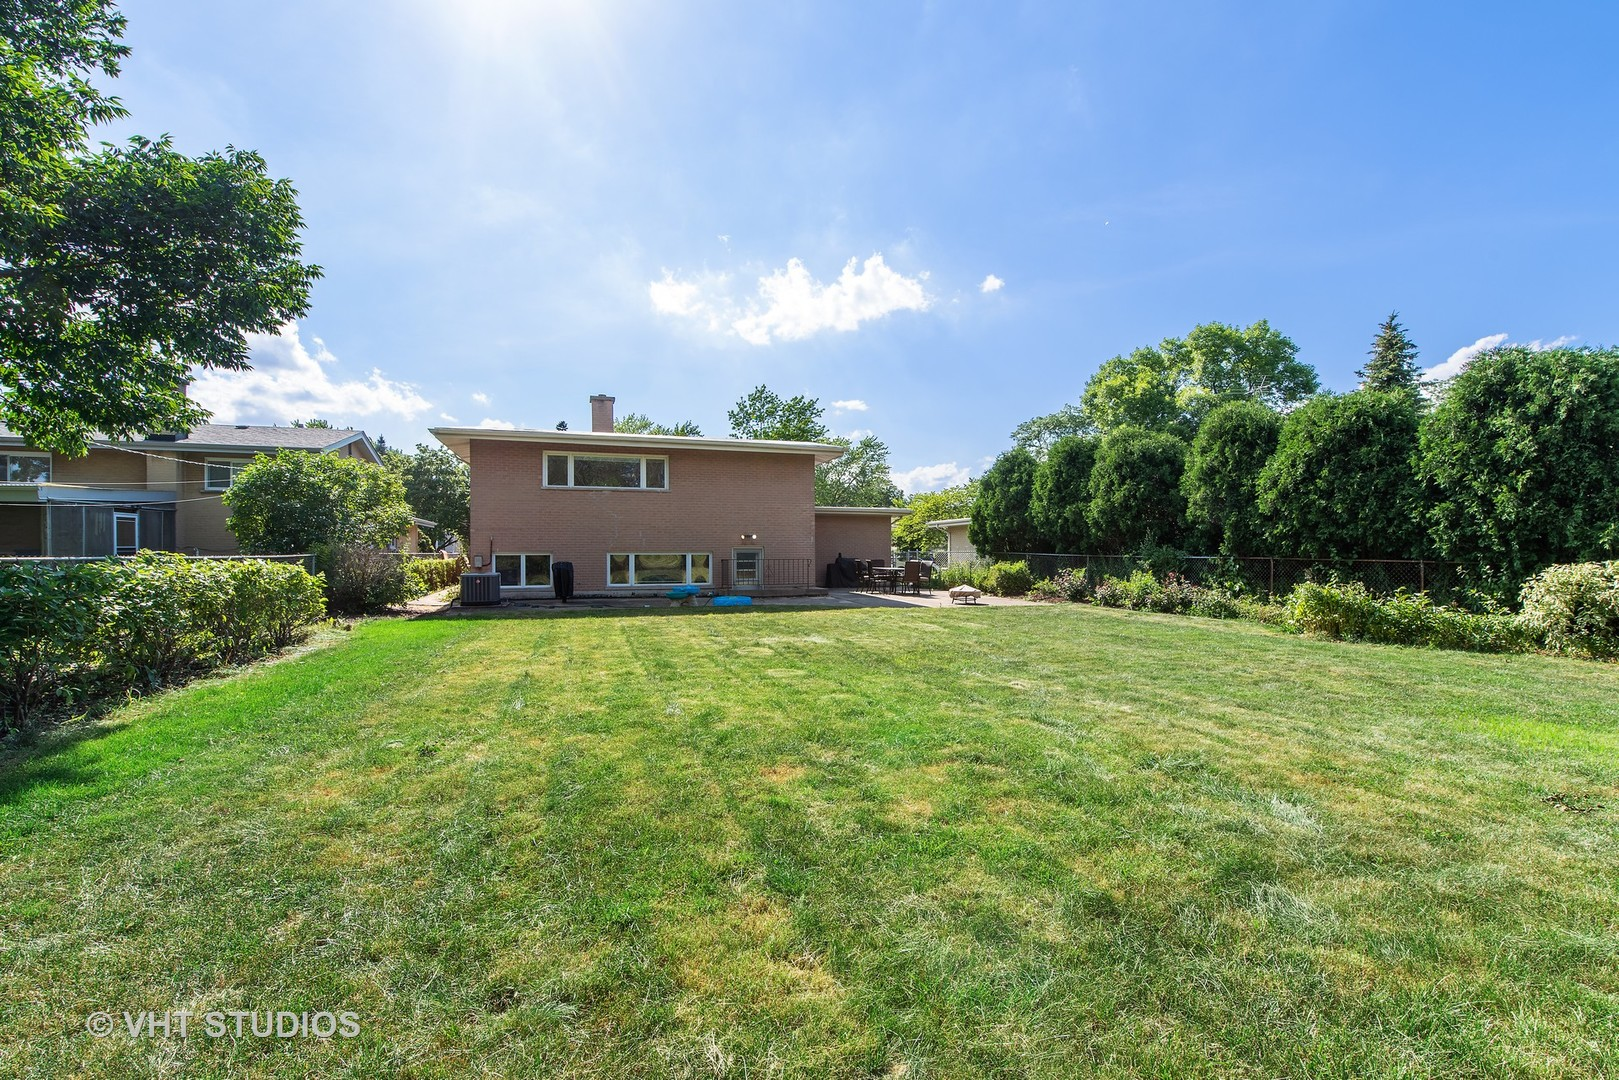 315 Greenfield, Glenview, Illinois, 60025